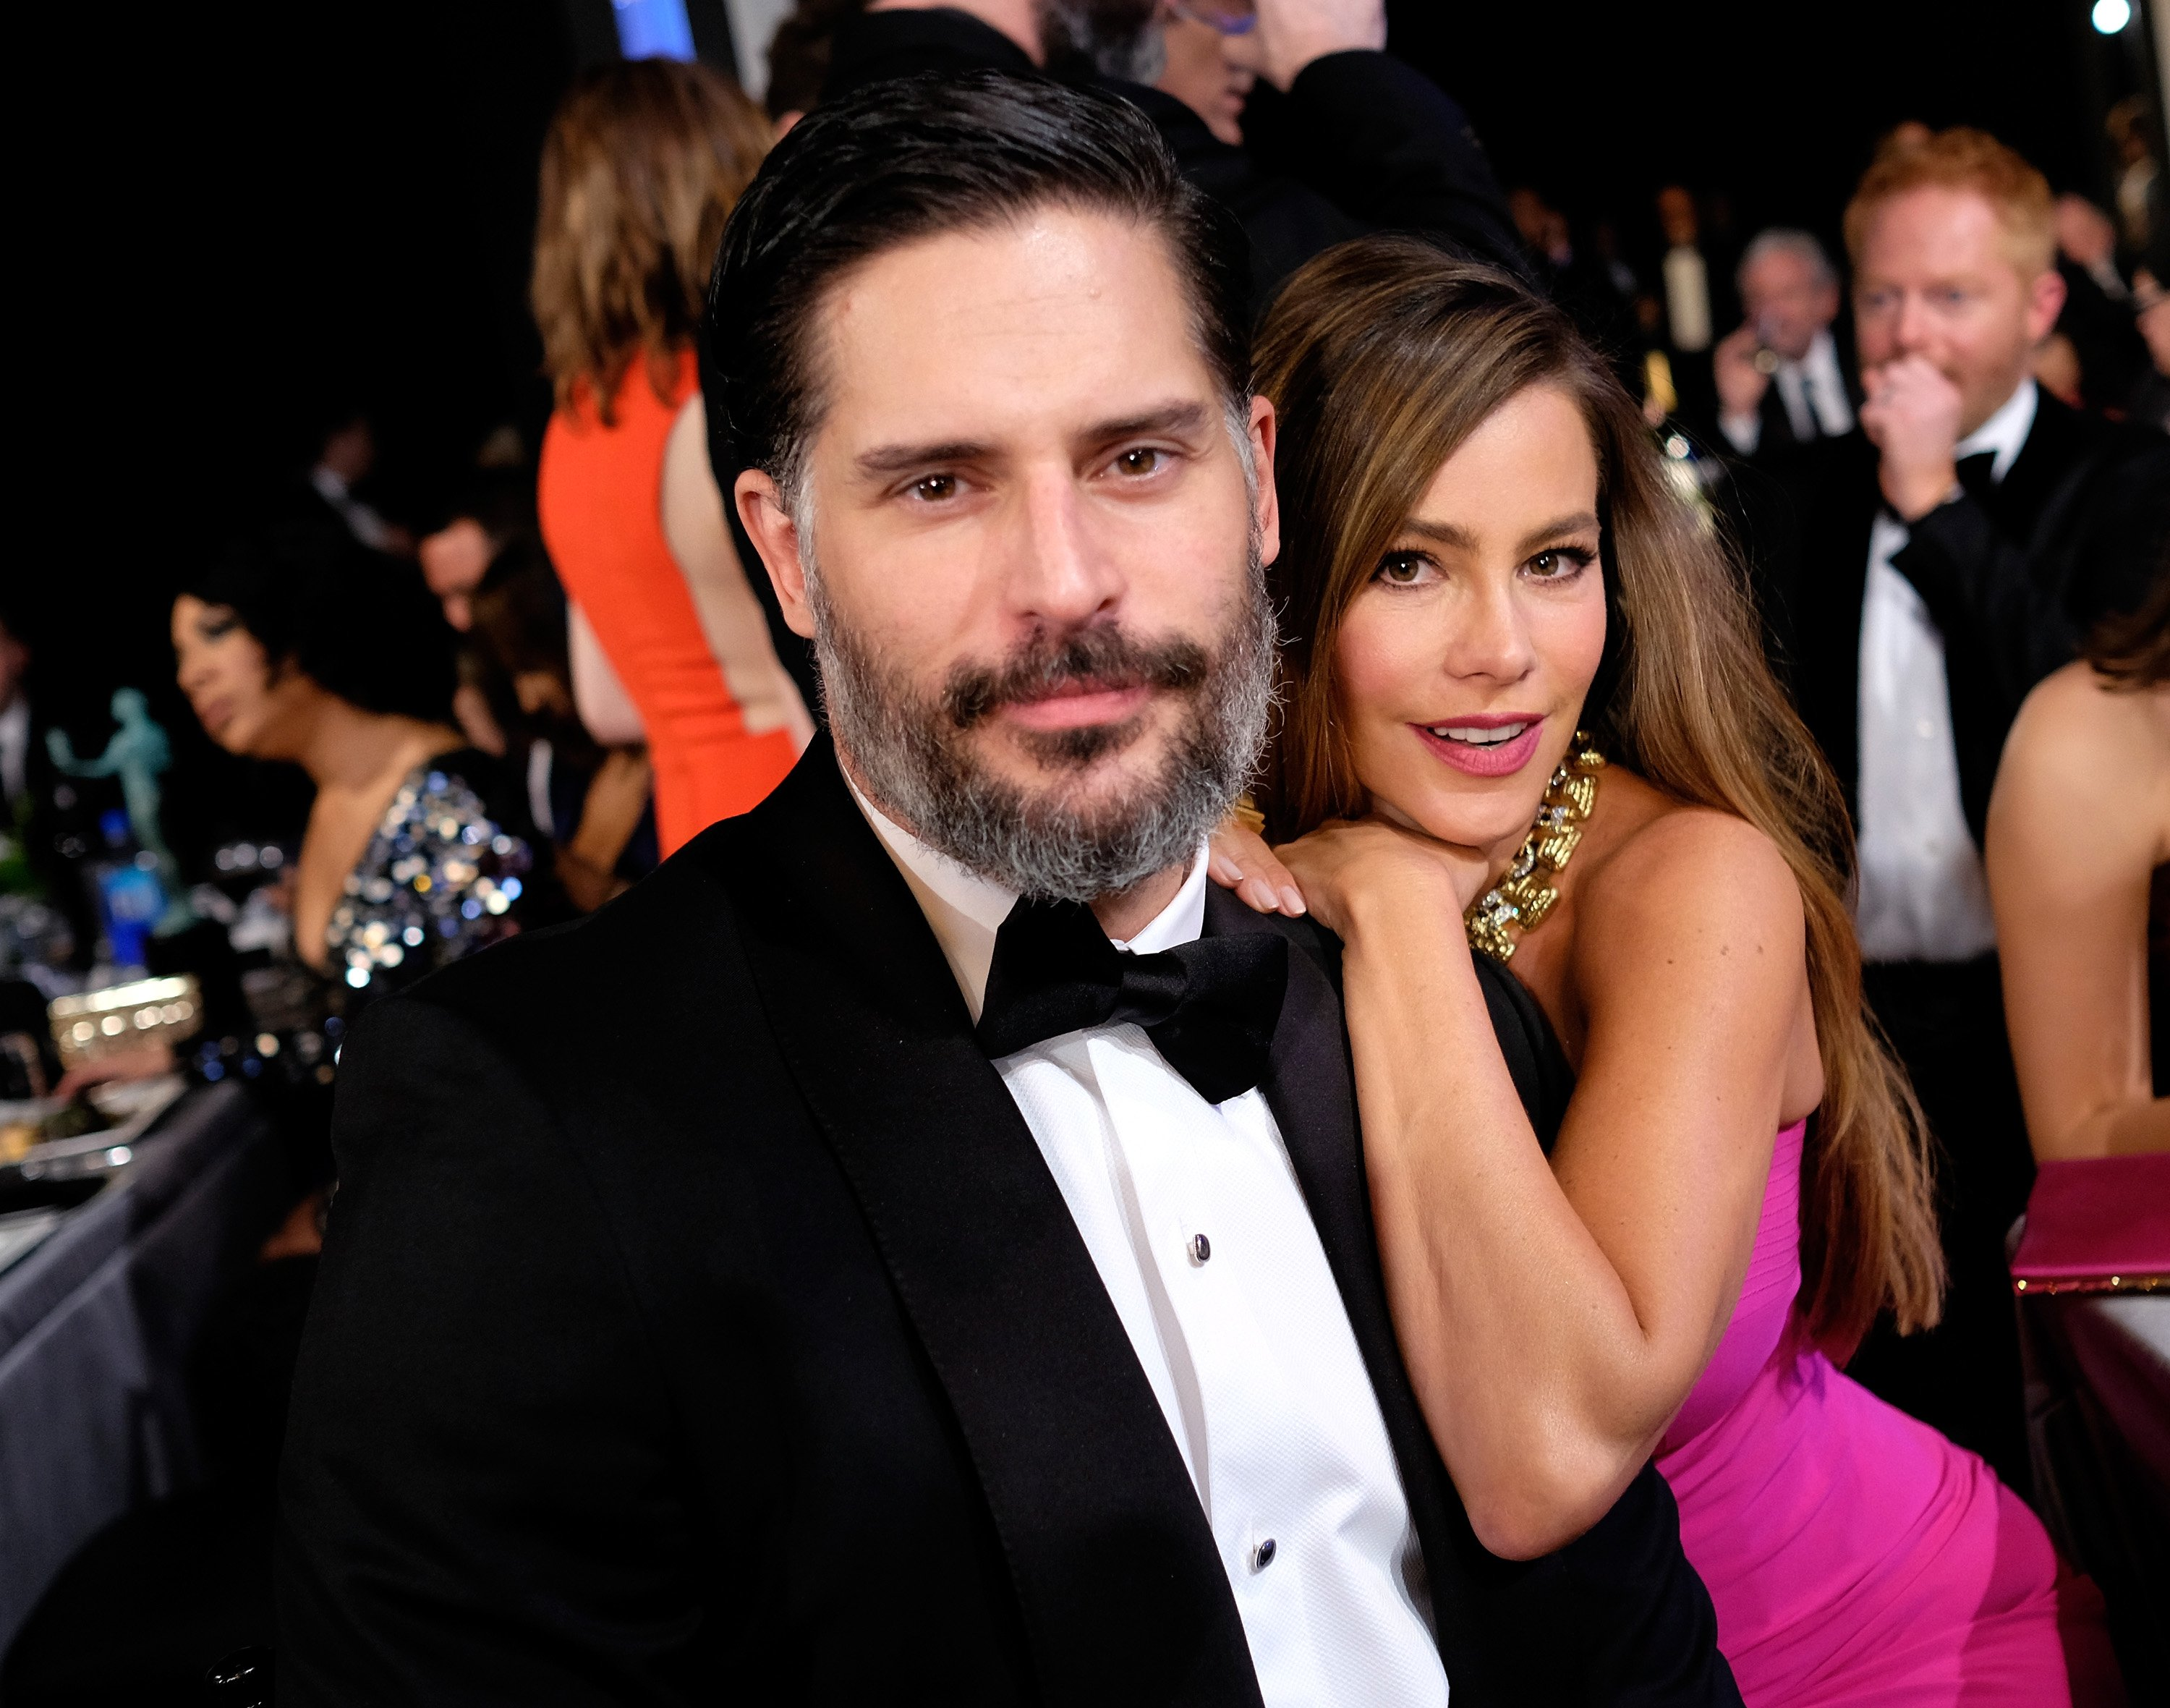 Joe Manganiello and Sofia Vergara attend The 22nd Annual Screen Actors Guild Awards on January 30, 2016 in Los Angeles, California. | Source: Getty Images.